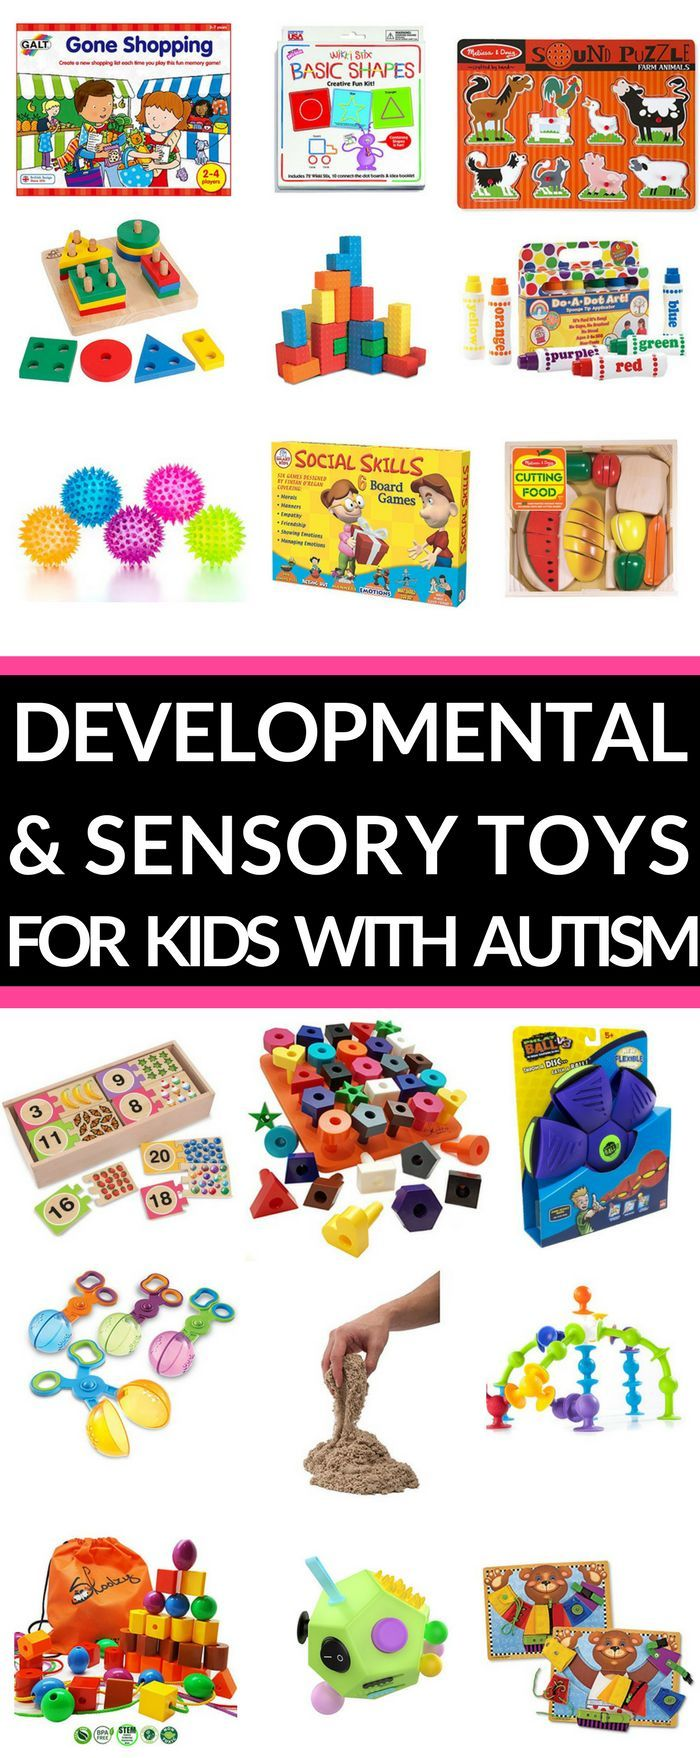 Gifts For Kids With Autism Looking For Gift Ideas For Kids With Autism Sensory Processing Disorder Or Other Special Needs Both Parents Teachers Will